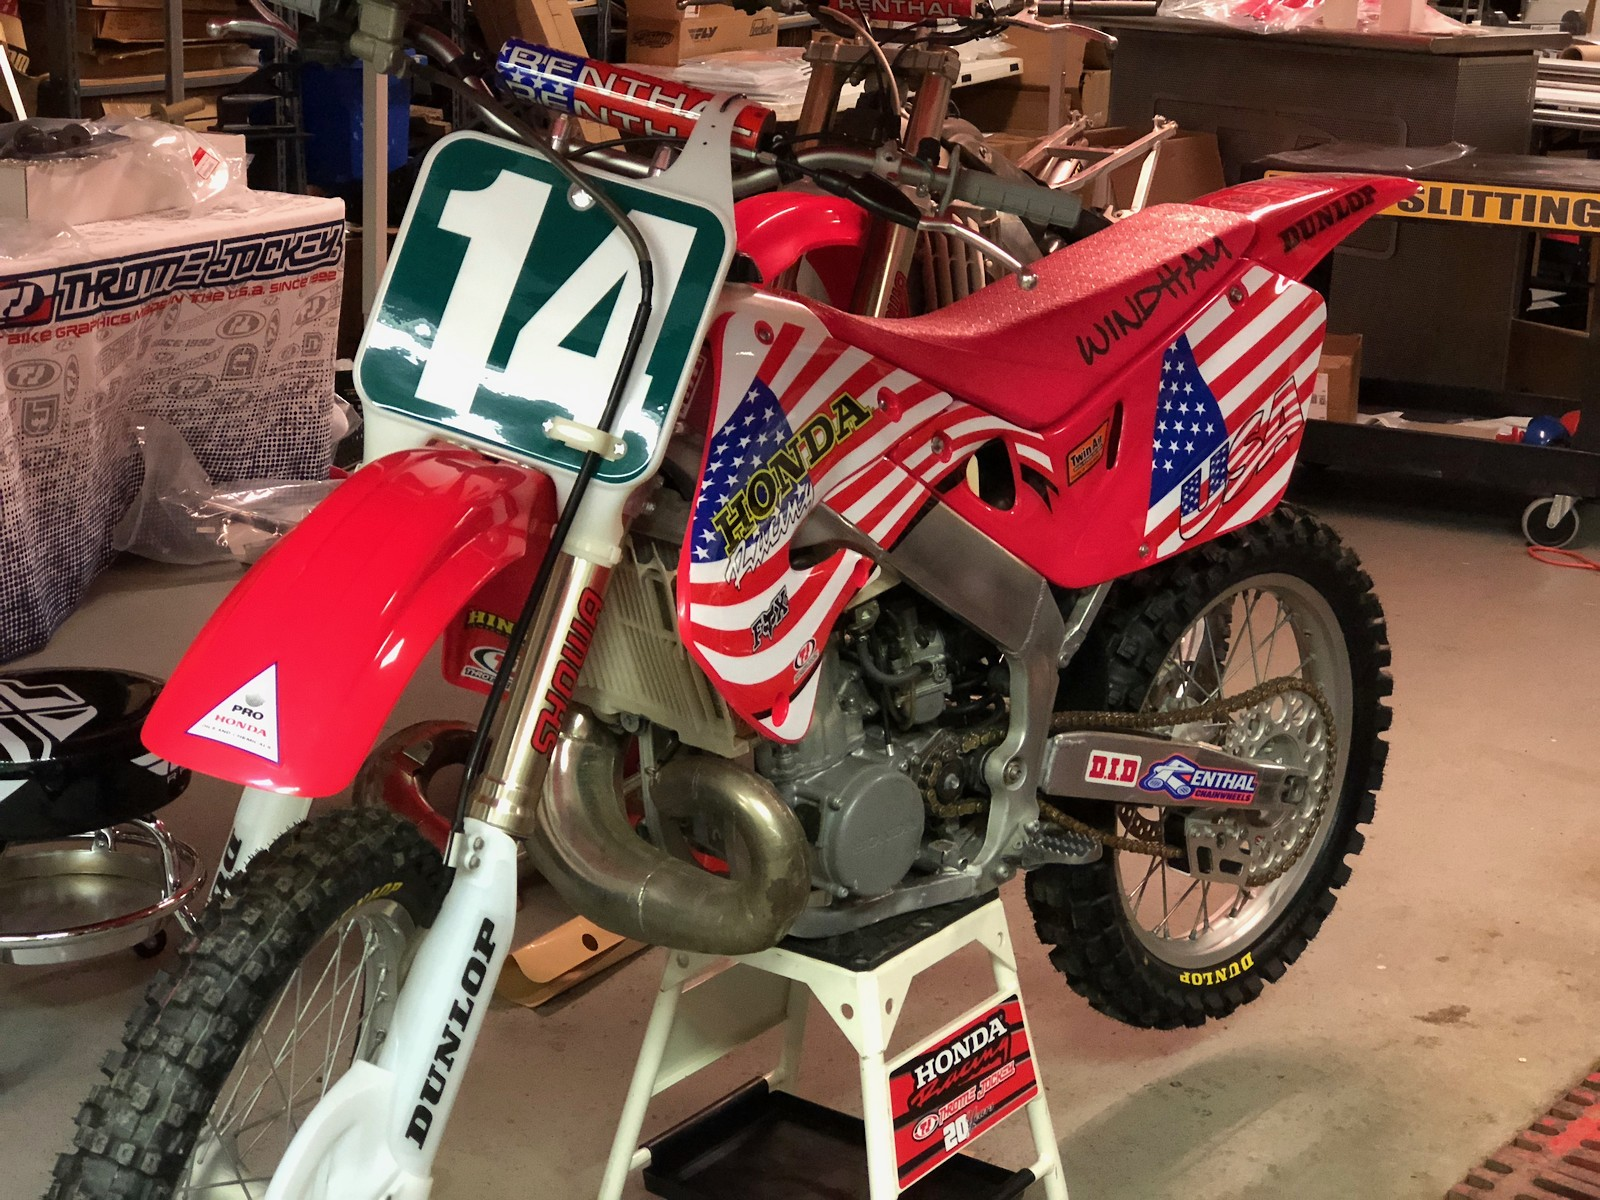 The bike got a makeover for the MXdN